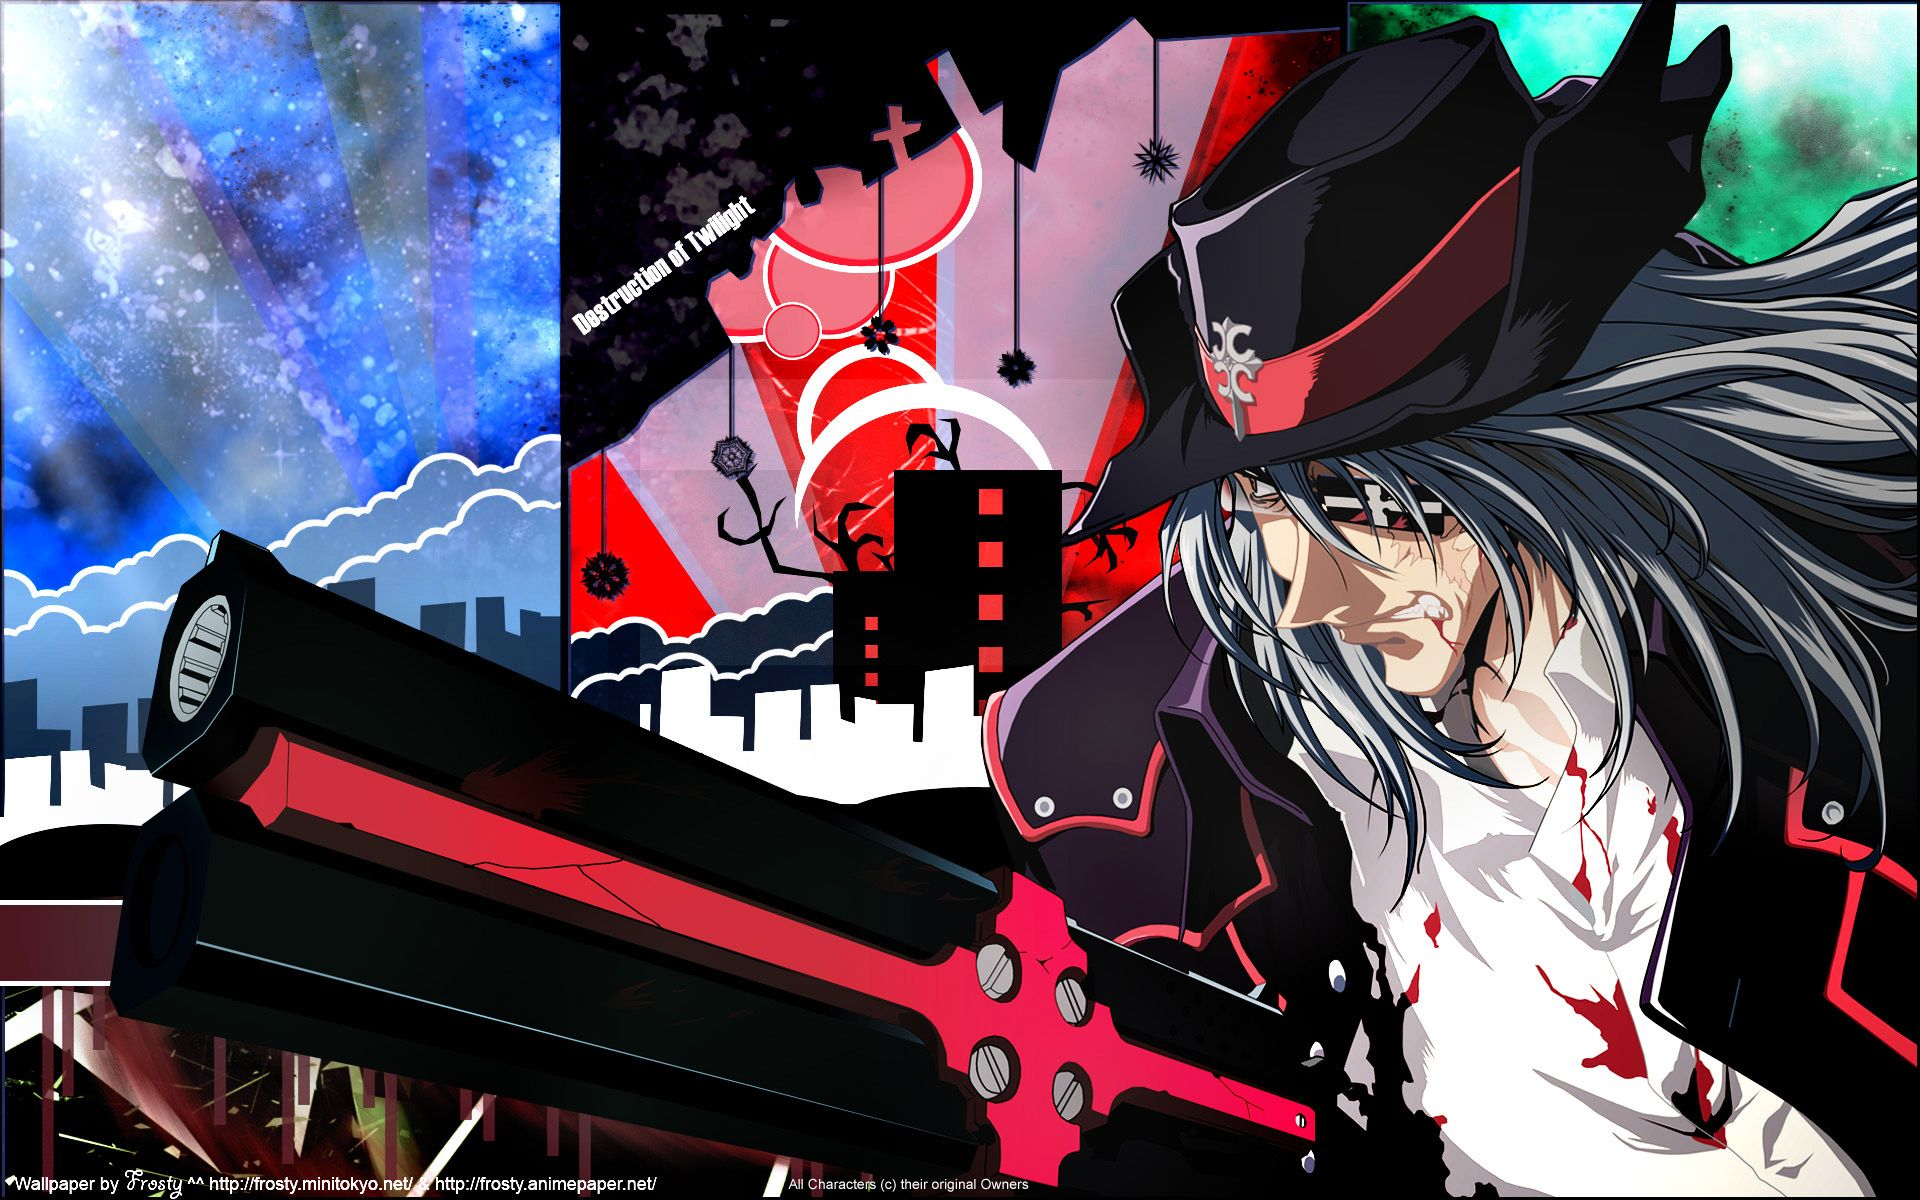 tags wallpaper gungrave anime anime images anime characters